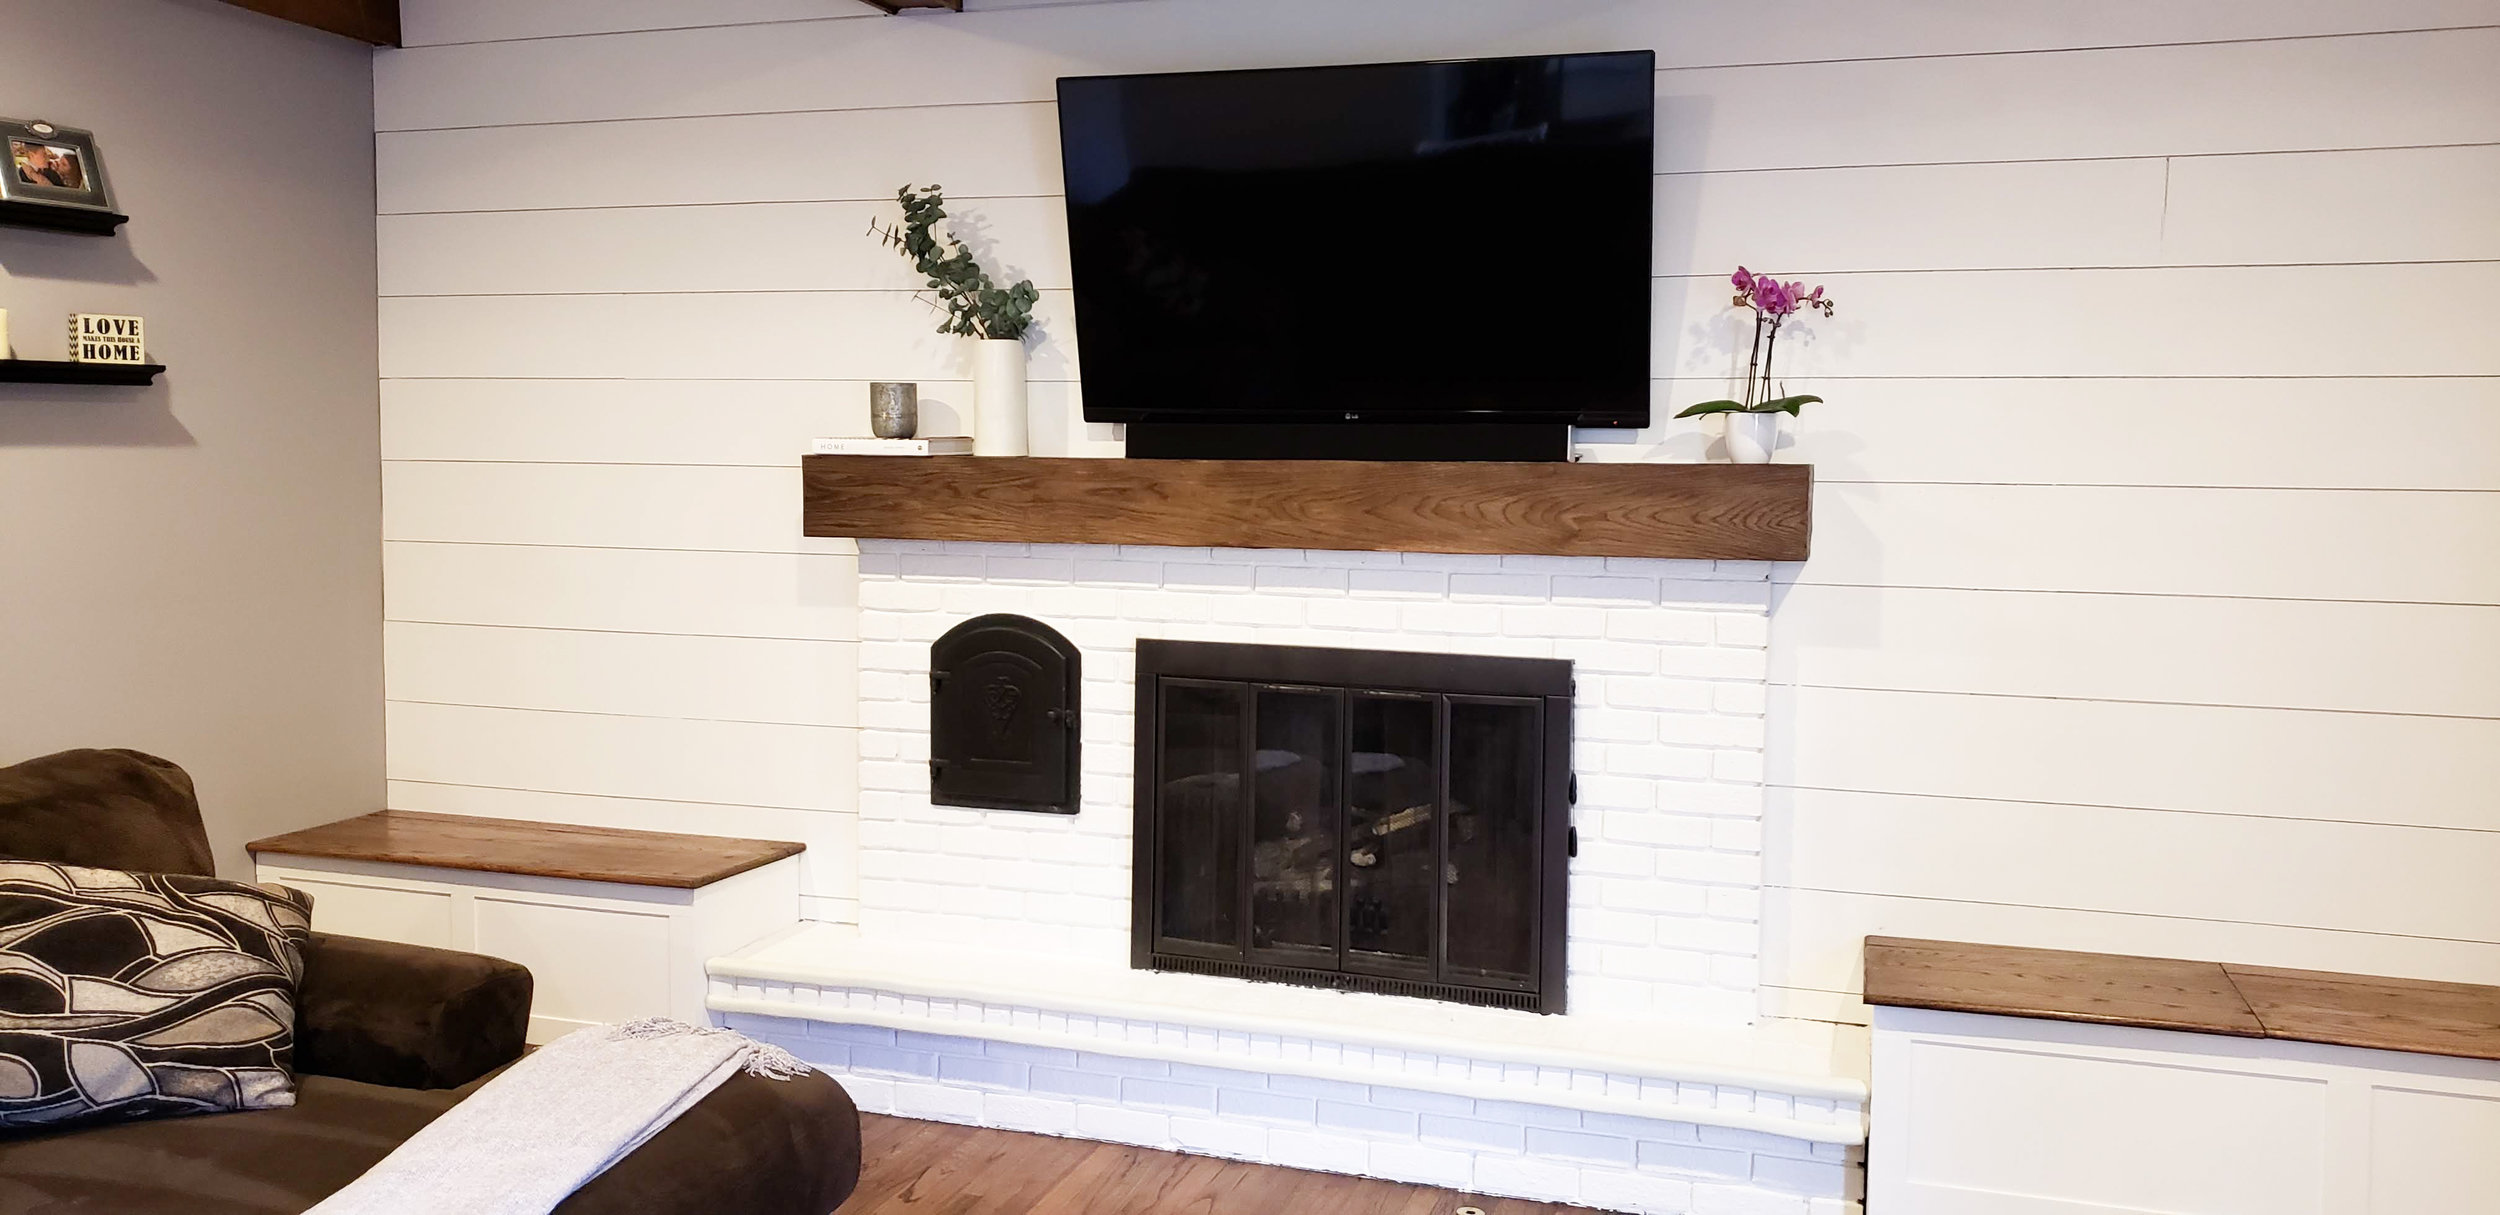 DIY Shiplap Wall | Wood Planked Wall | Fireplace Makeover